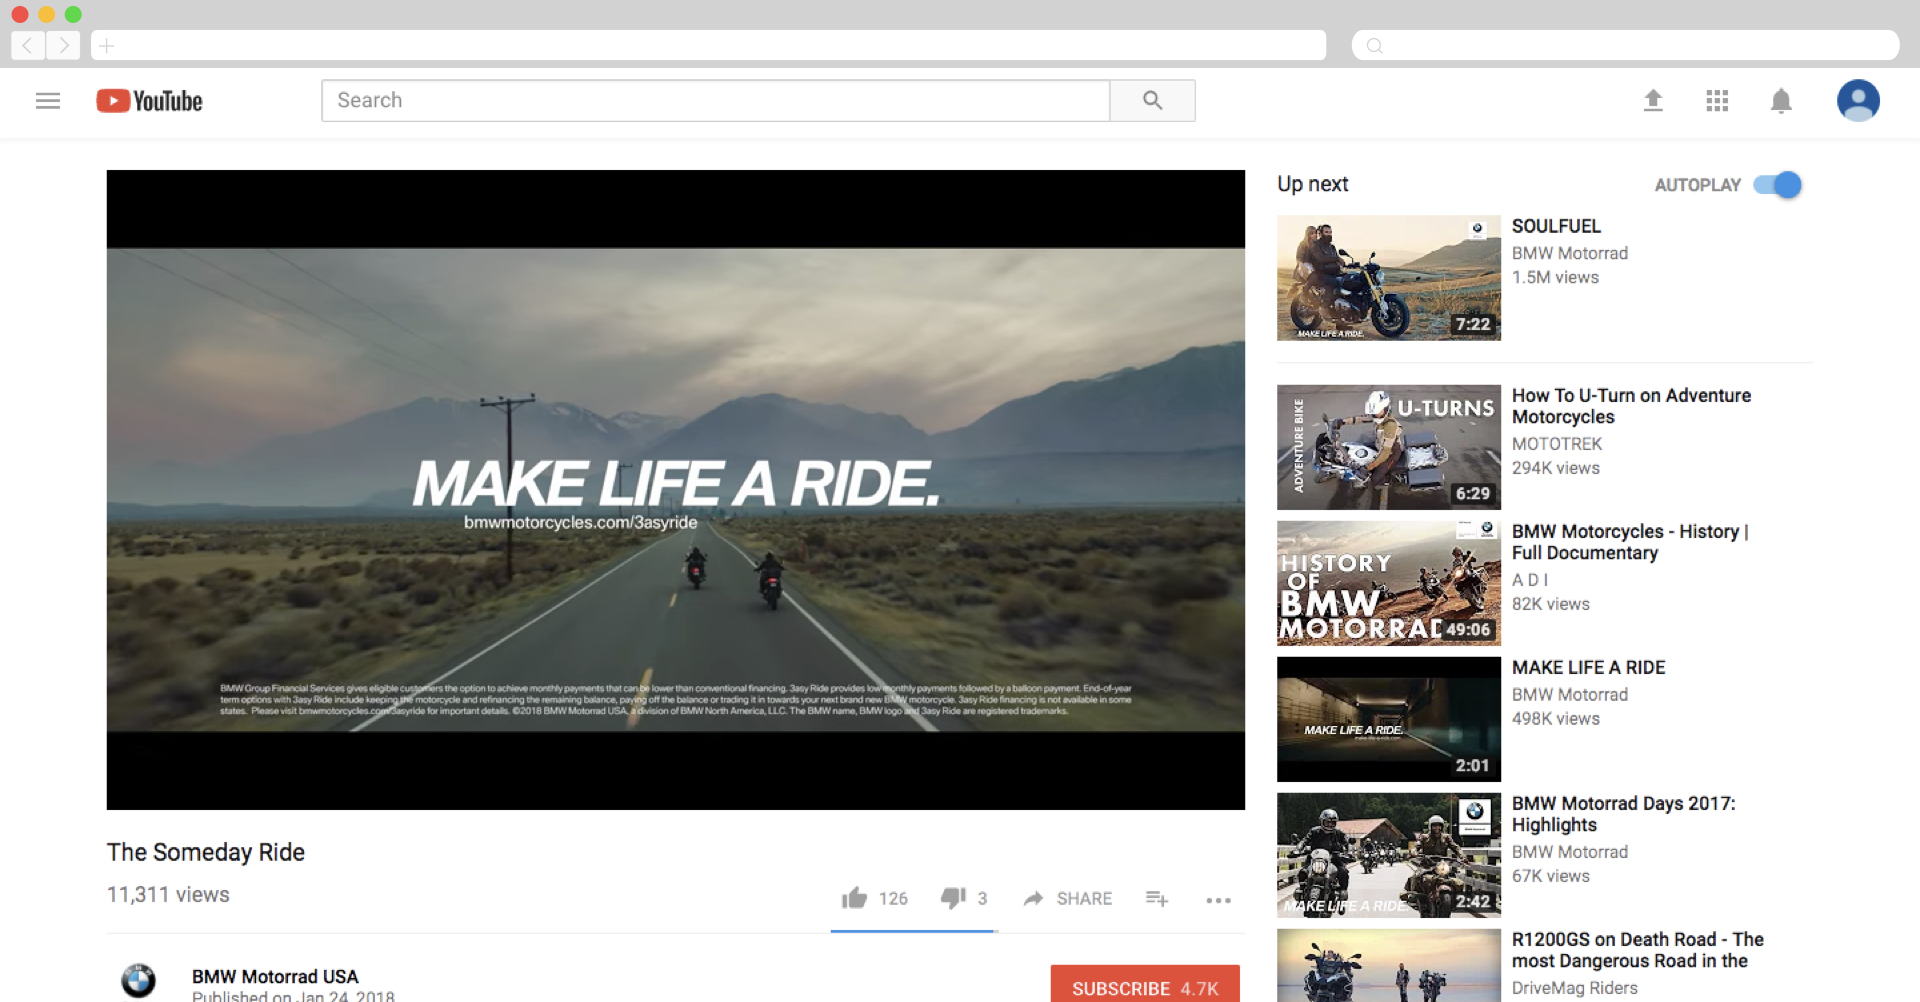 BMW's Short Film Featuring Their Motorcycle